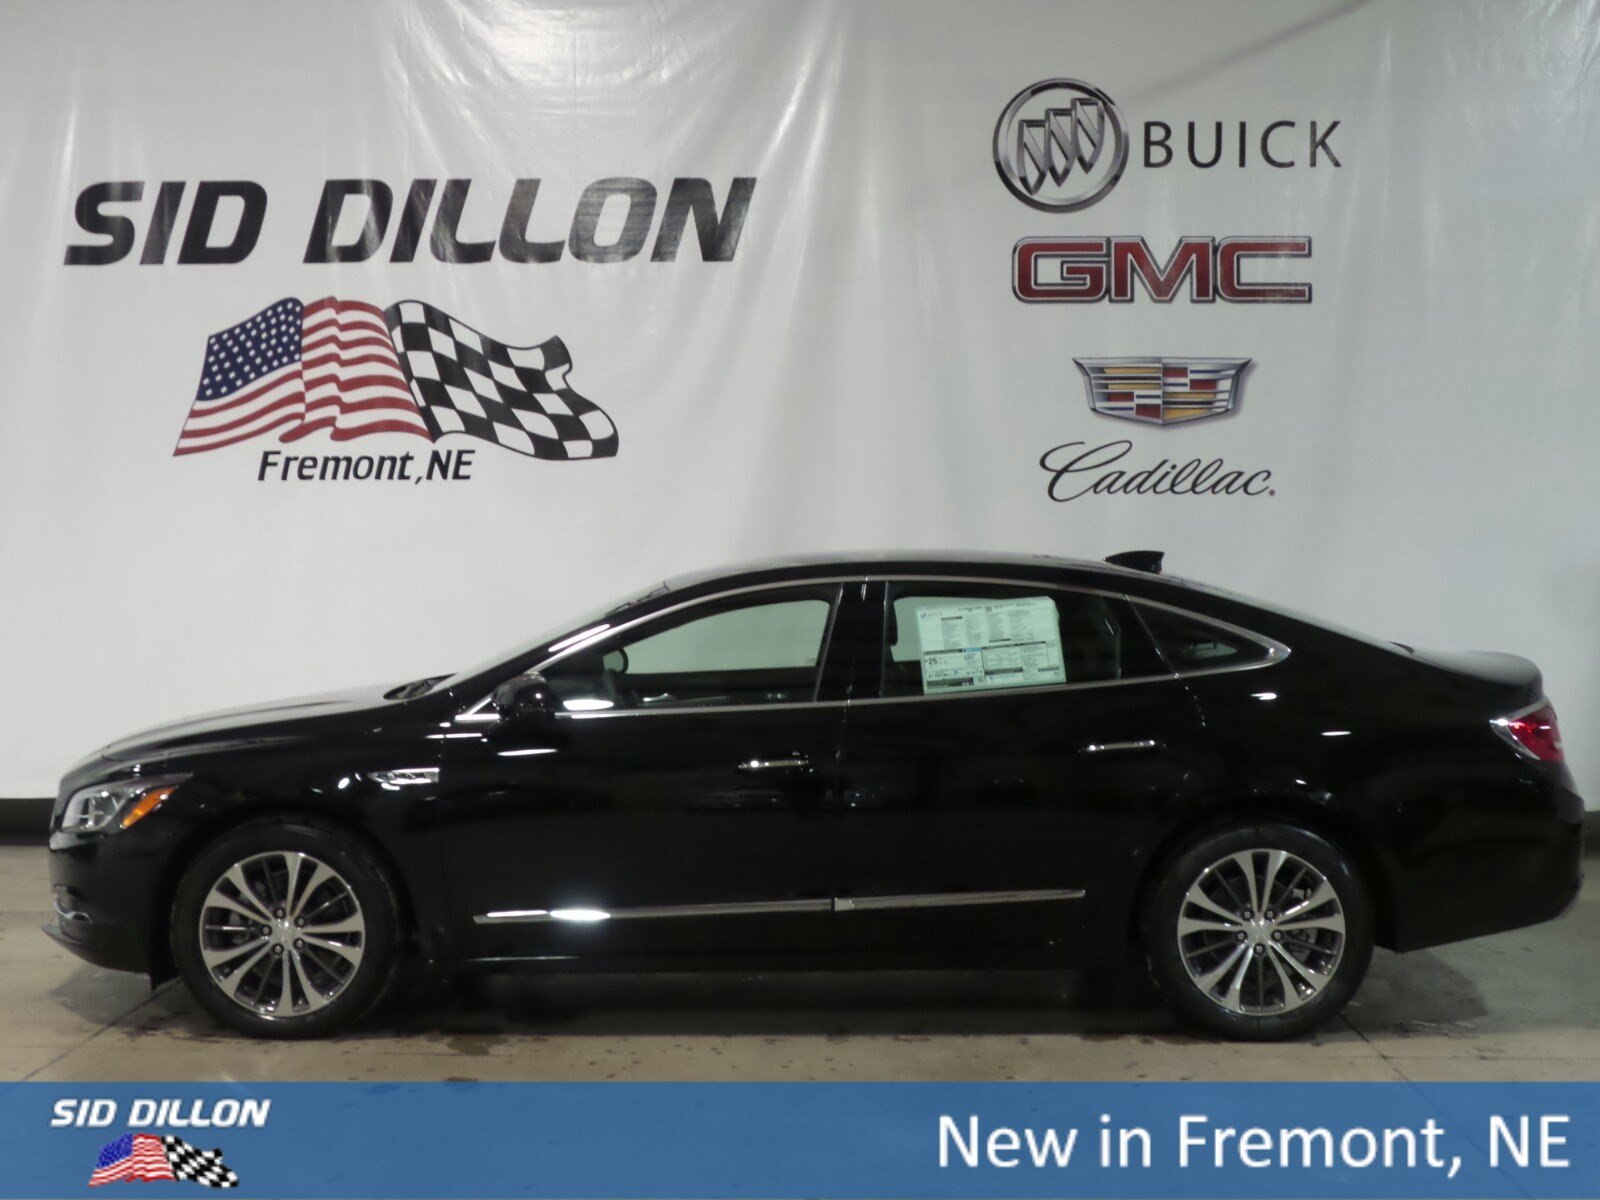 Buick LaCrosse: Express Window Operation